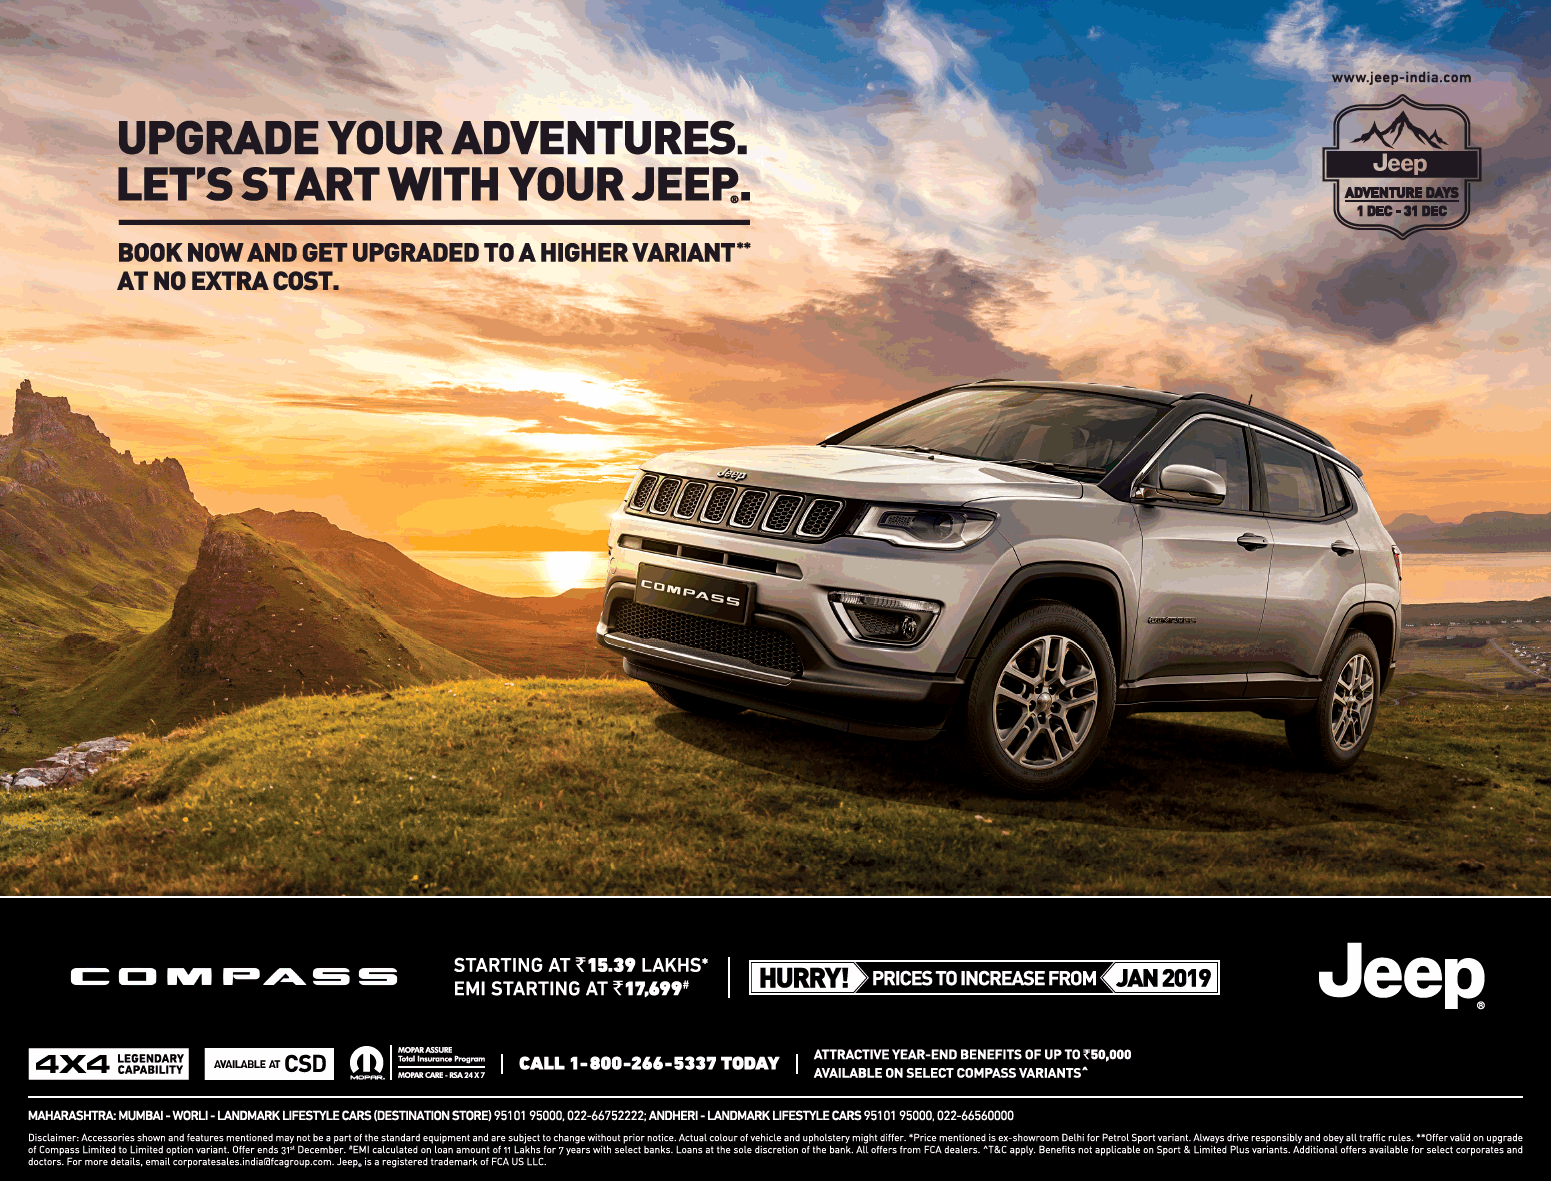 Jeep Car Compass Upgrade Your Adventures Ad In Times Of